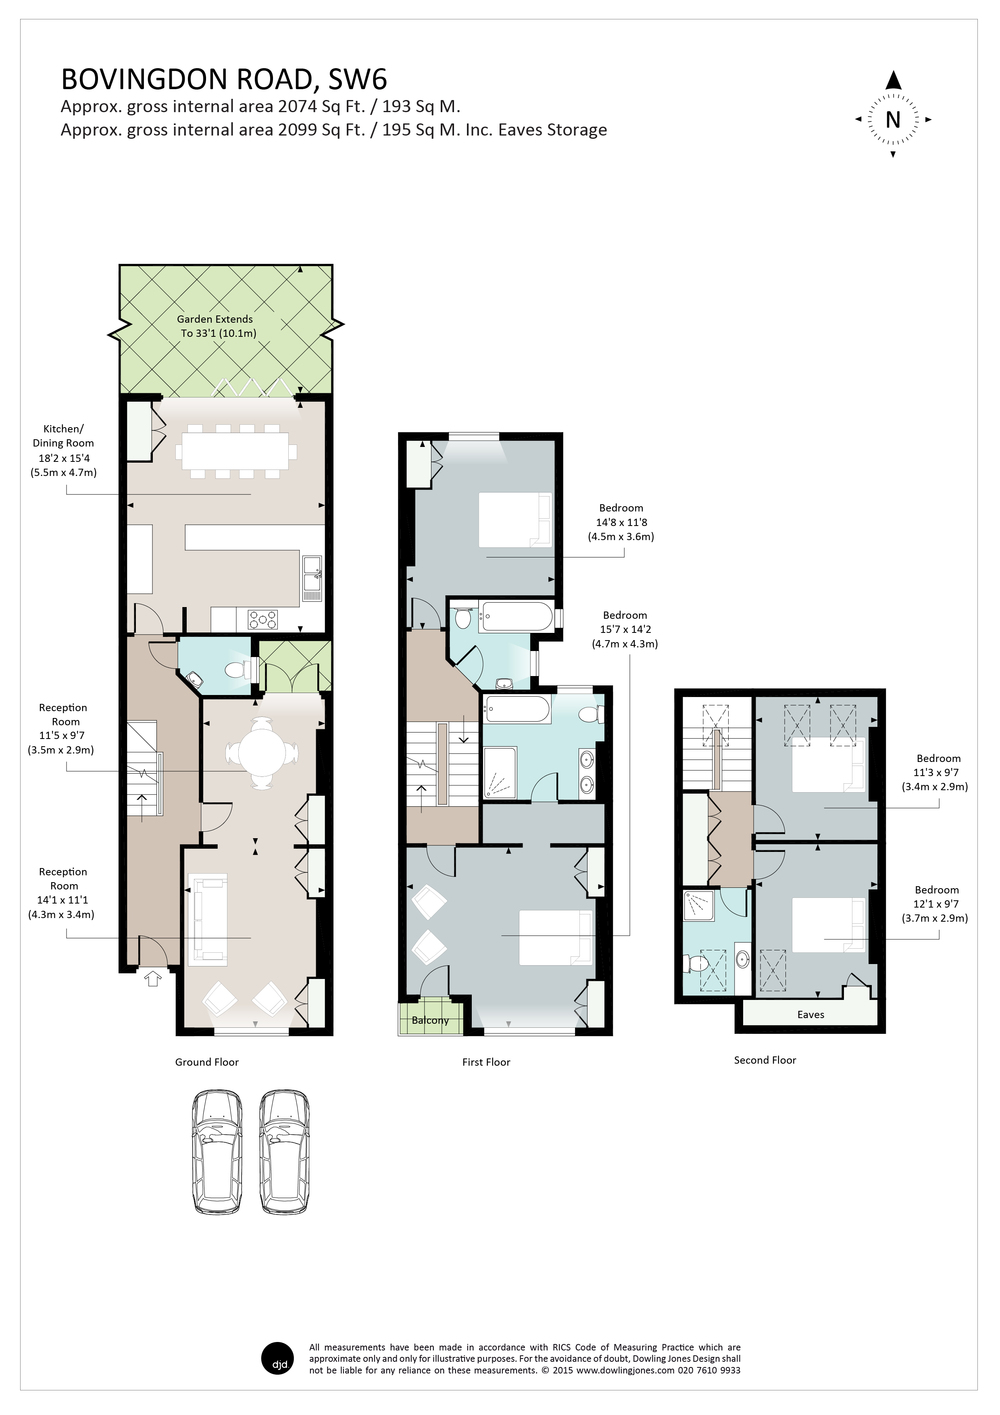 dowling jones bovingdon road floor plan